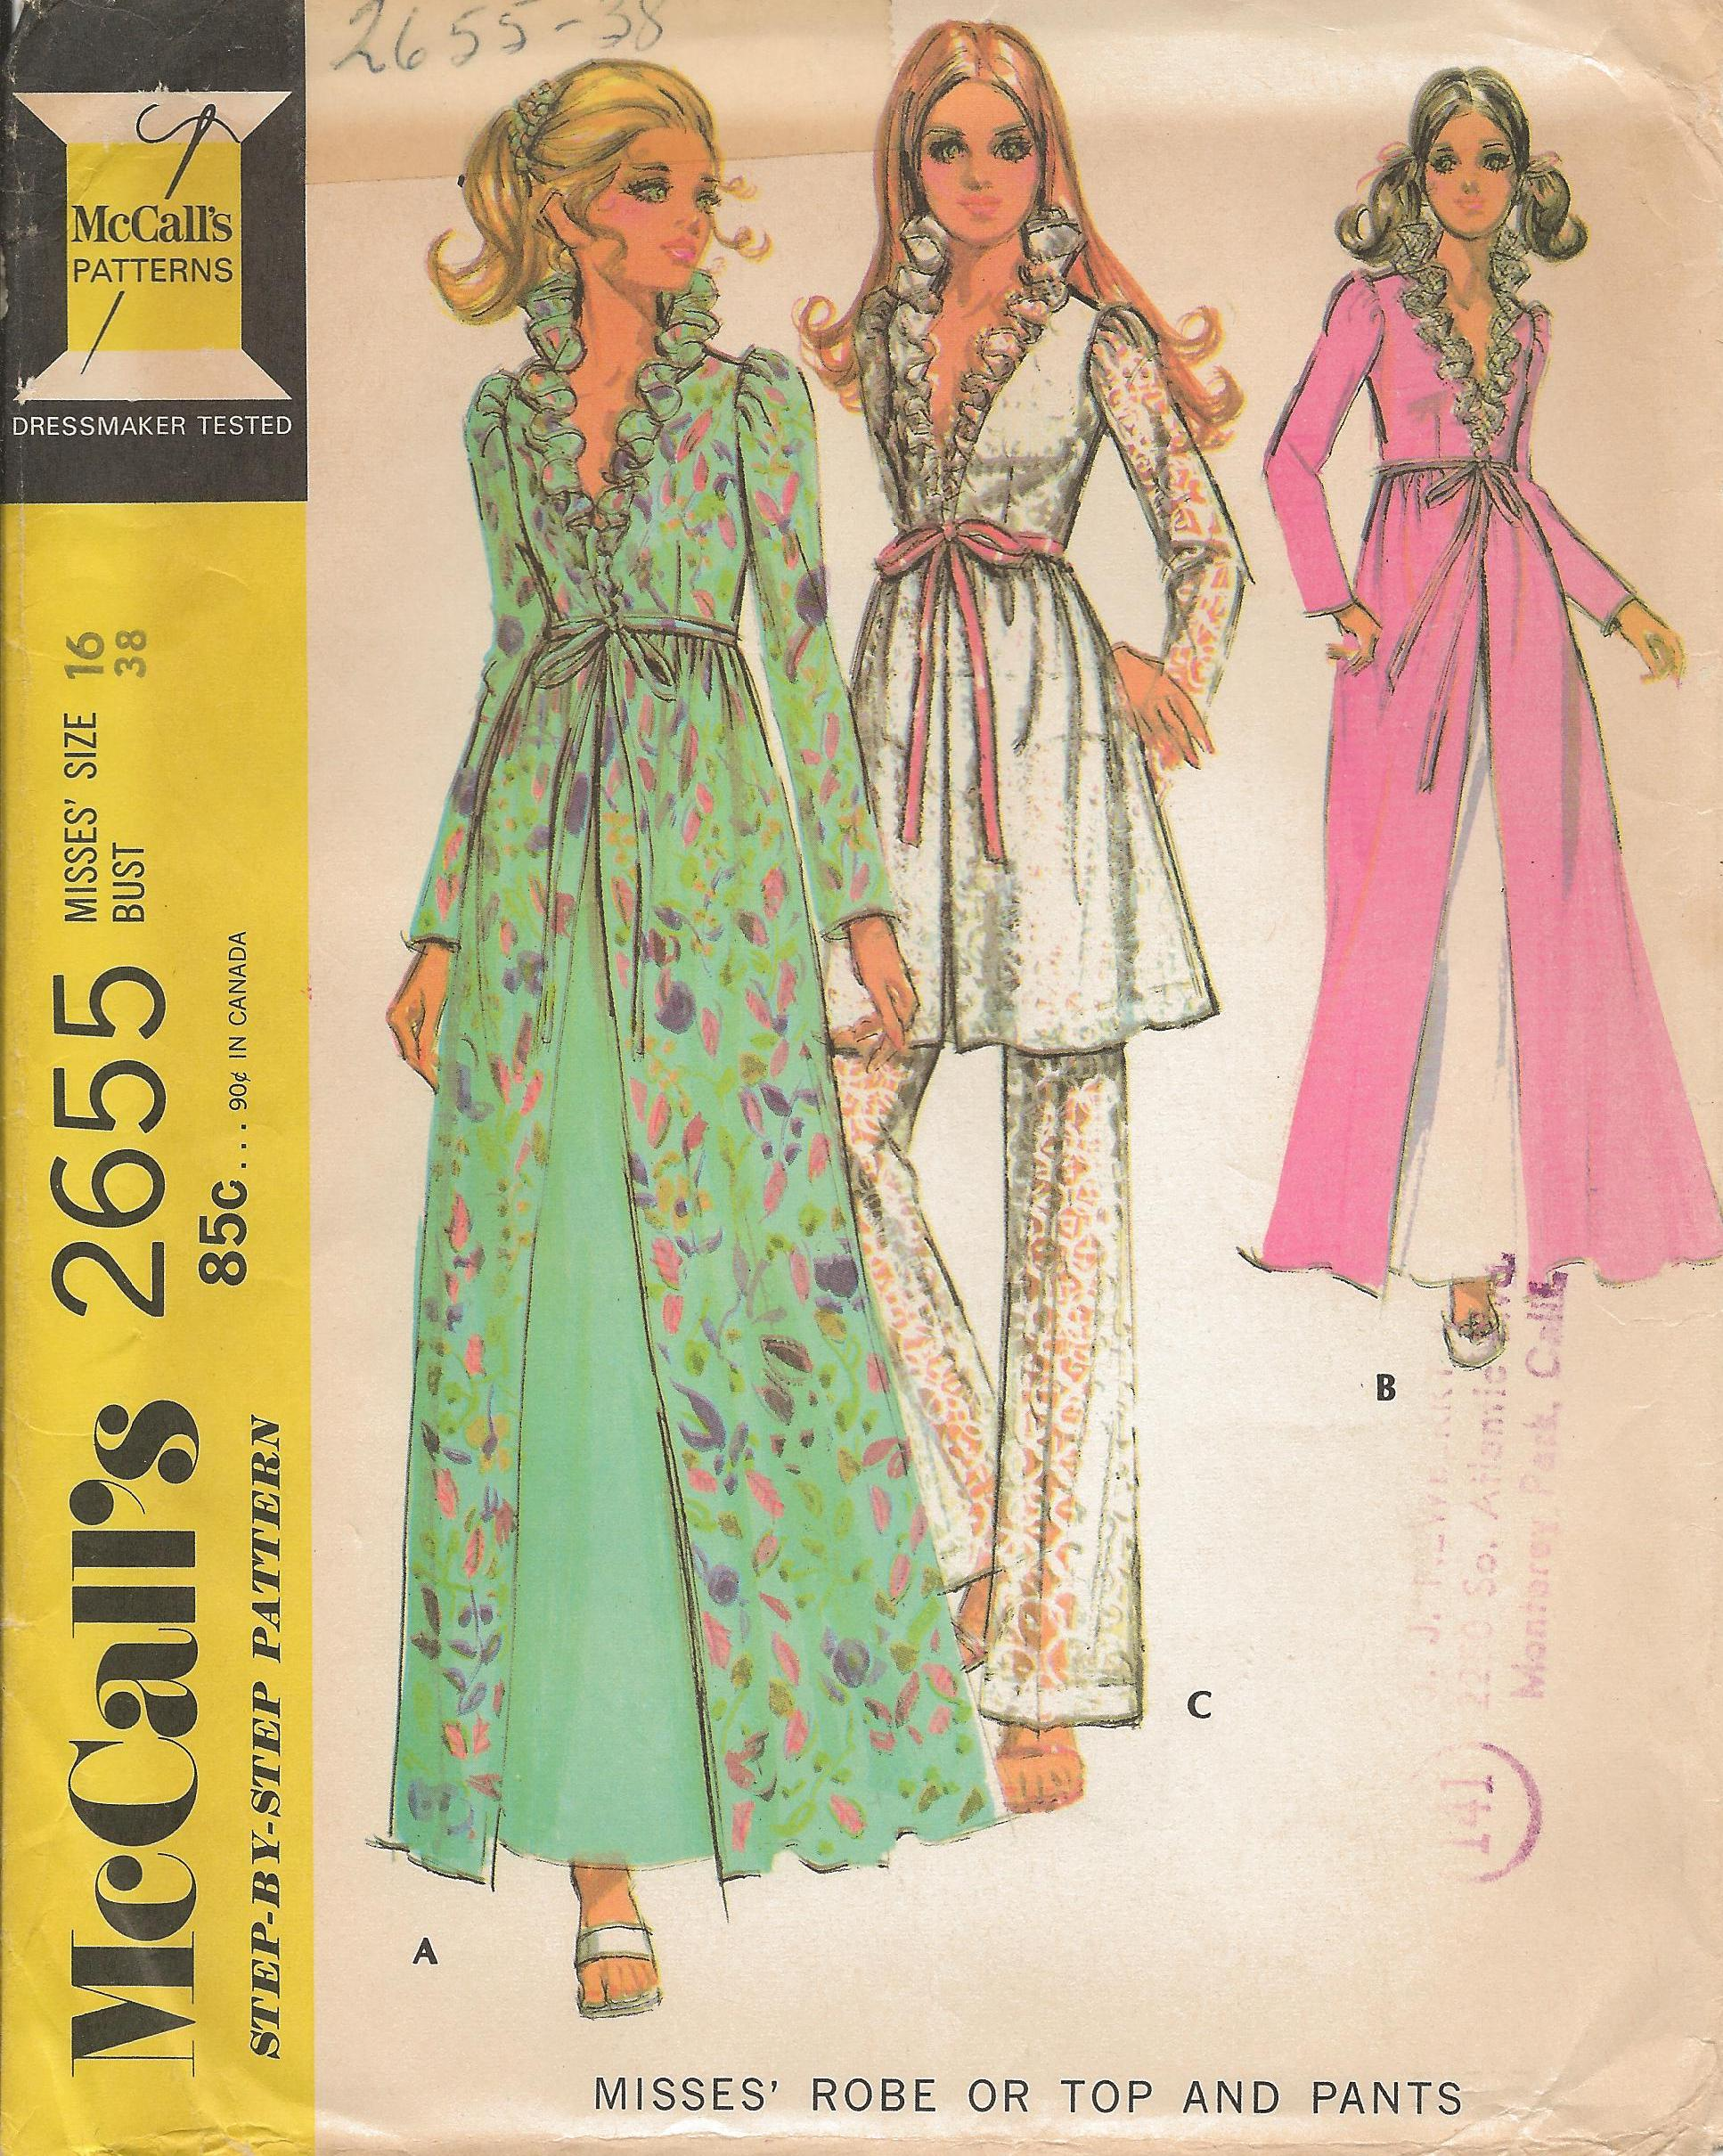 Mccalls 2655 a vintage sewing patterns fandom powered by wikia high waisted robe or top has lined bodice lace or fabric ruffles at neck sleeves gather into high cut armholes jeuxipadfo Gallery